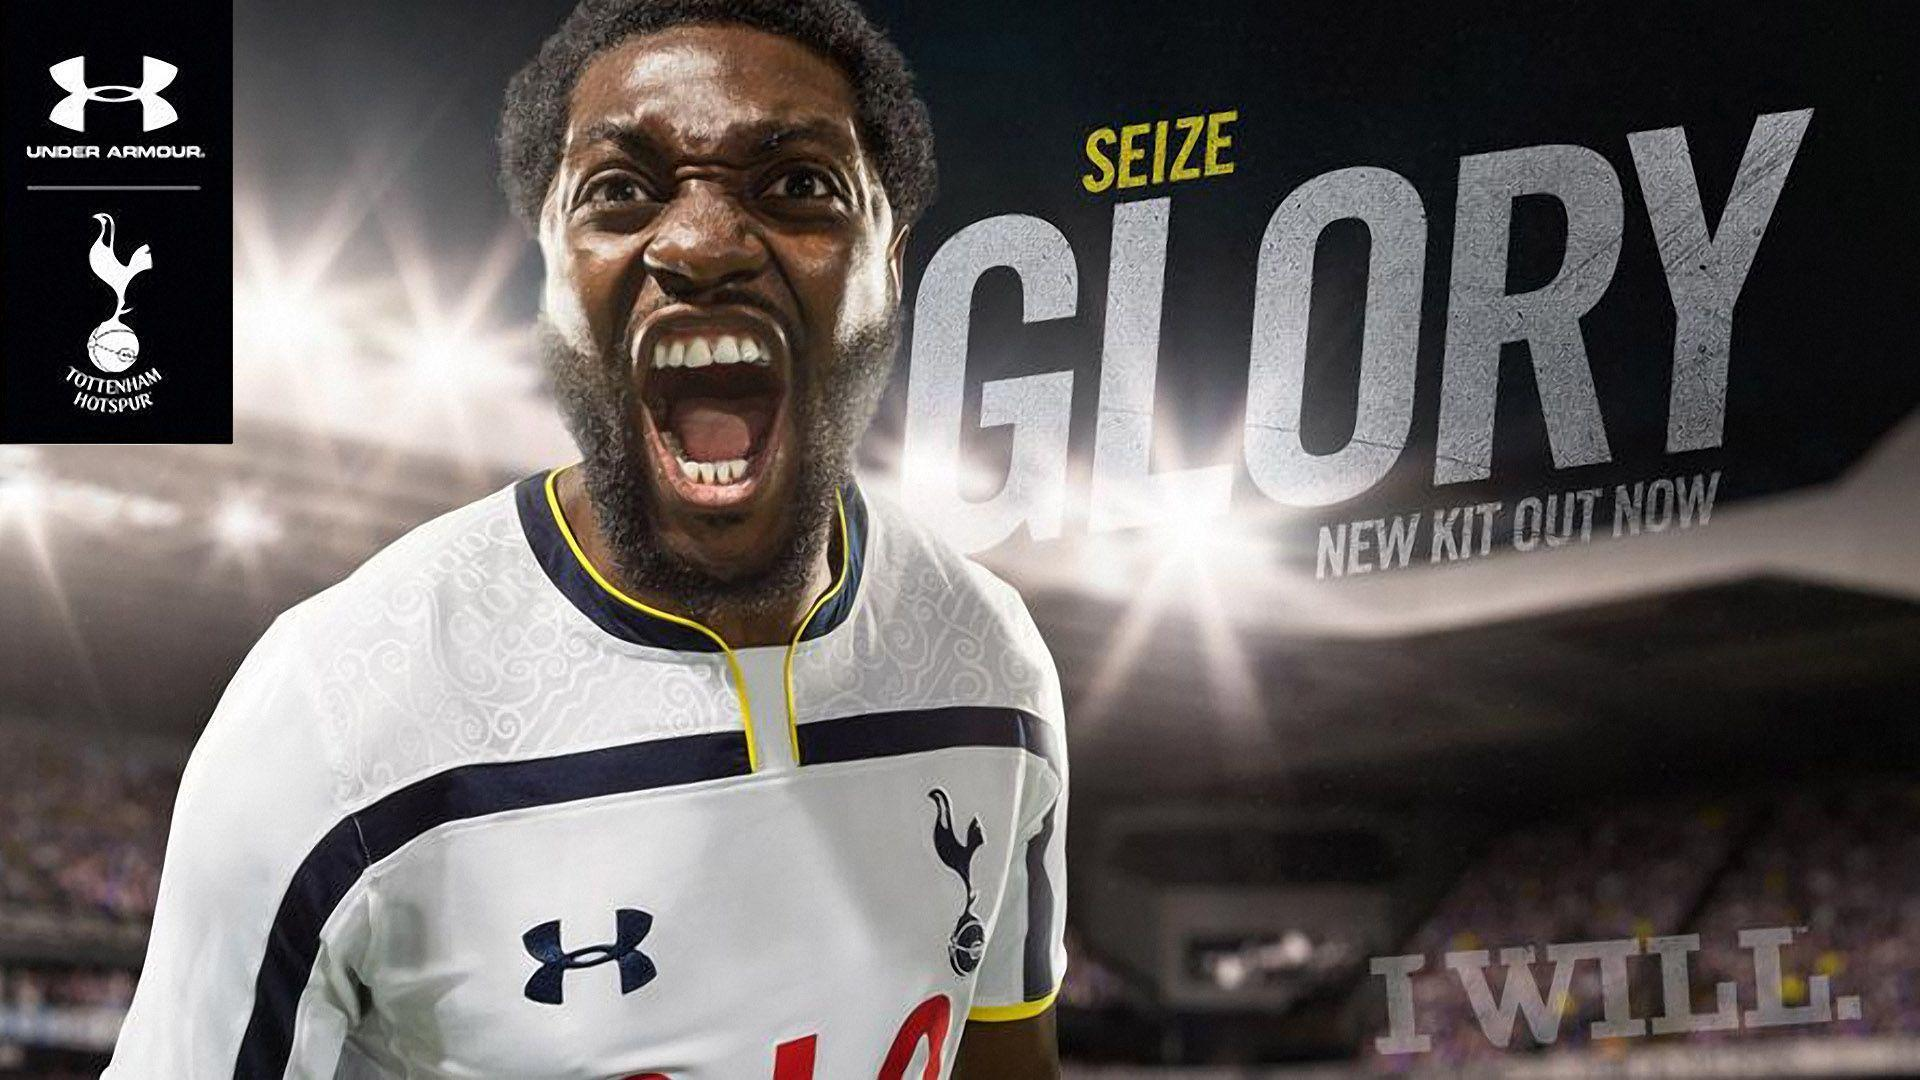 Tottenham Hotspur Under Armour 2014-15 Home Kit Wallpaper Wide or ...